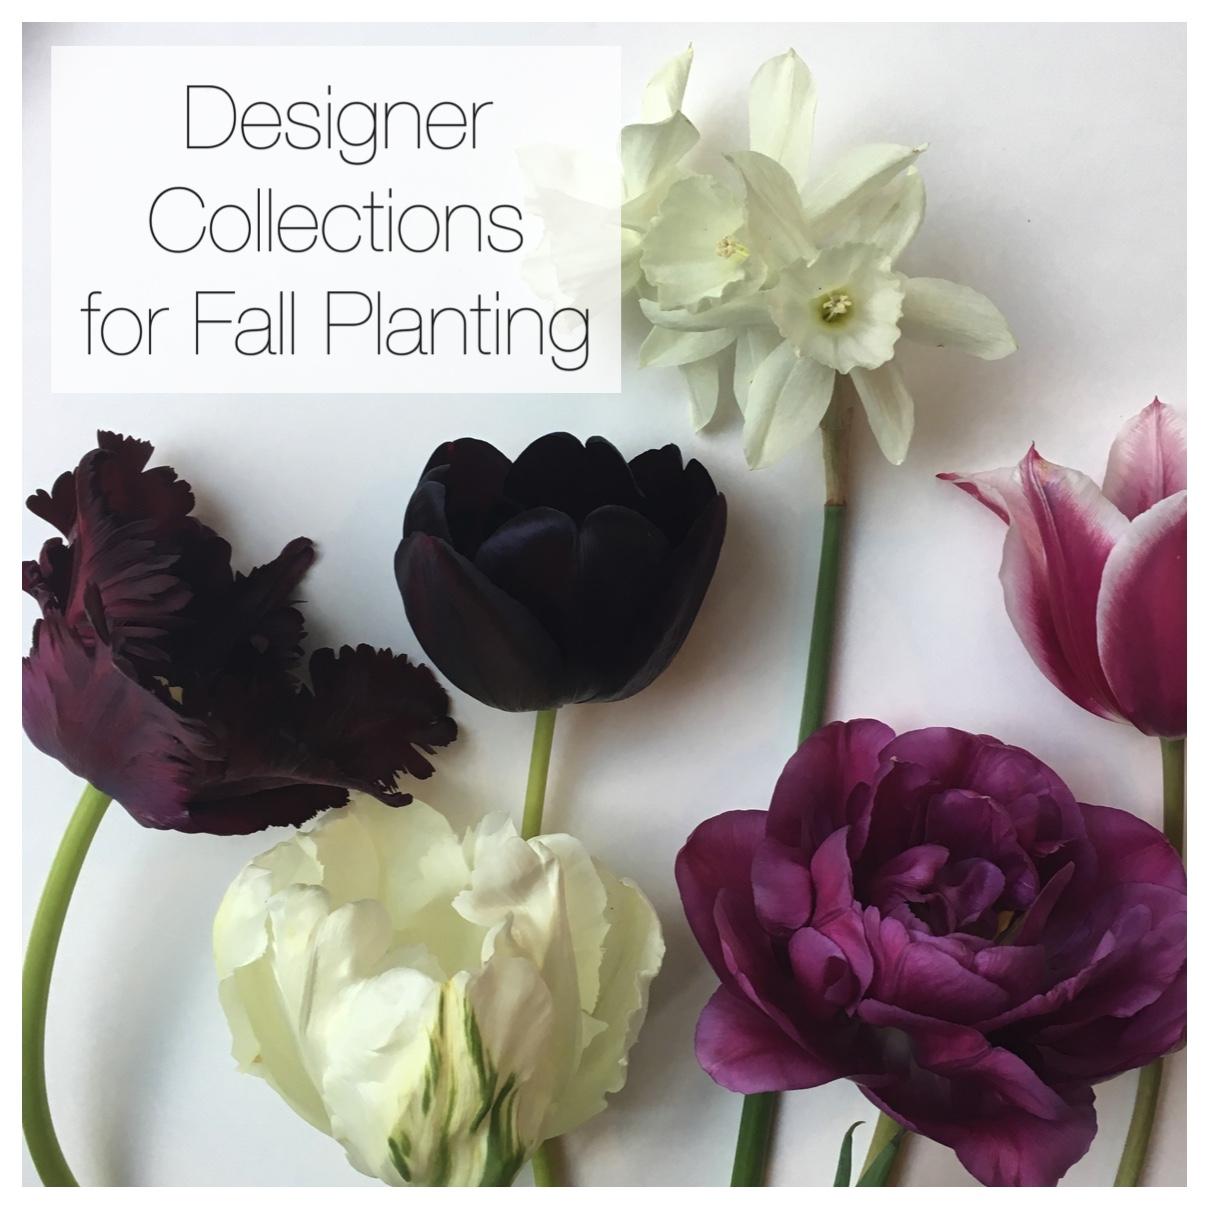 New Flirty Fleurs Designer Collections for Fall Planting